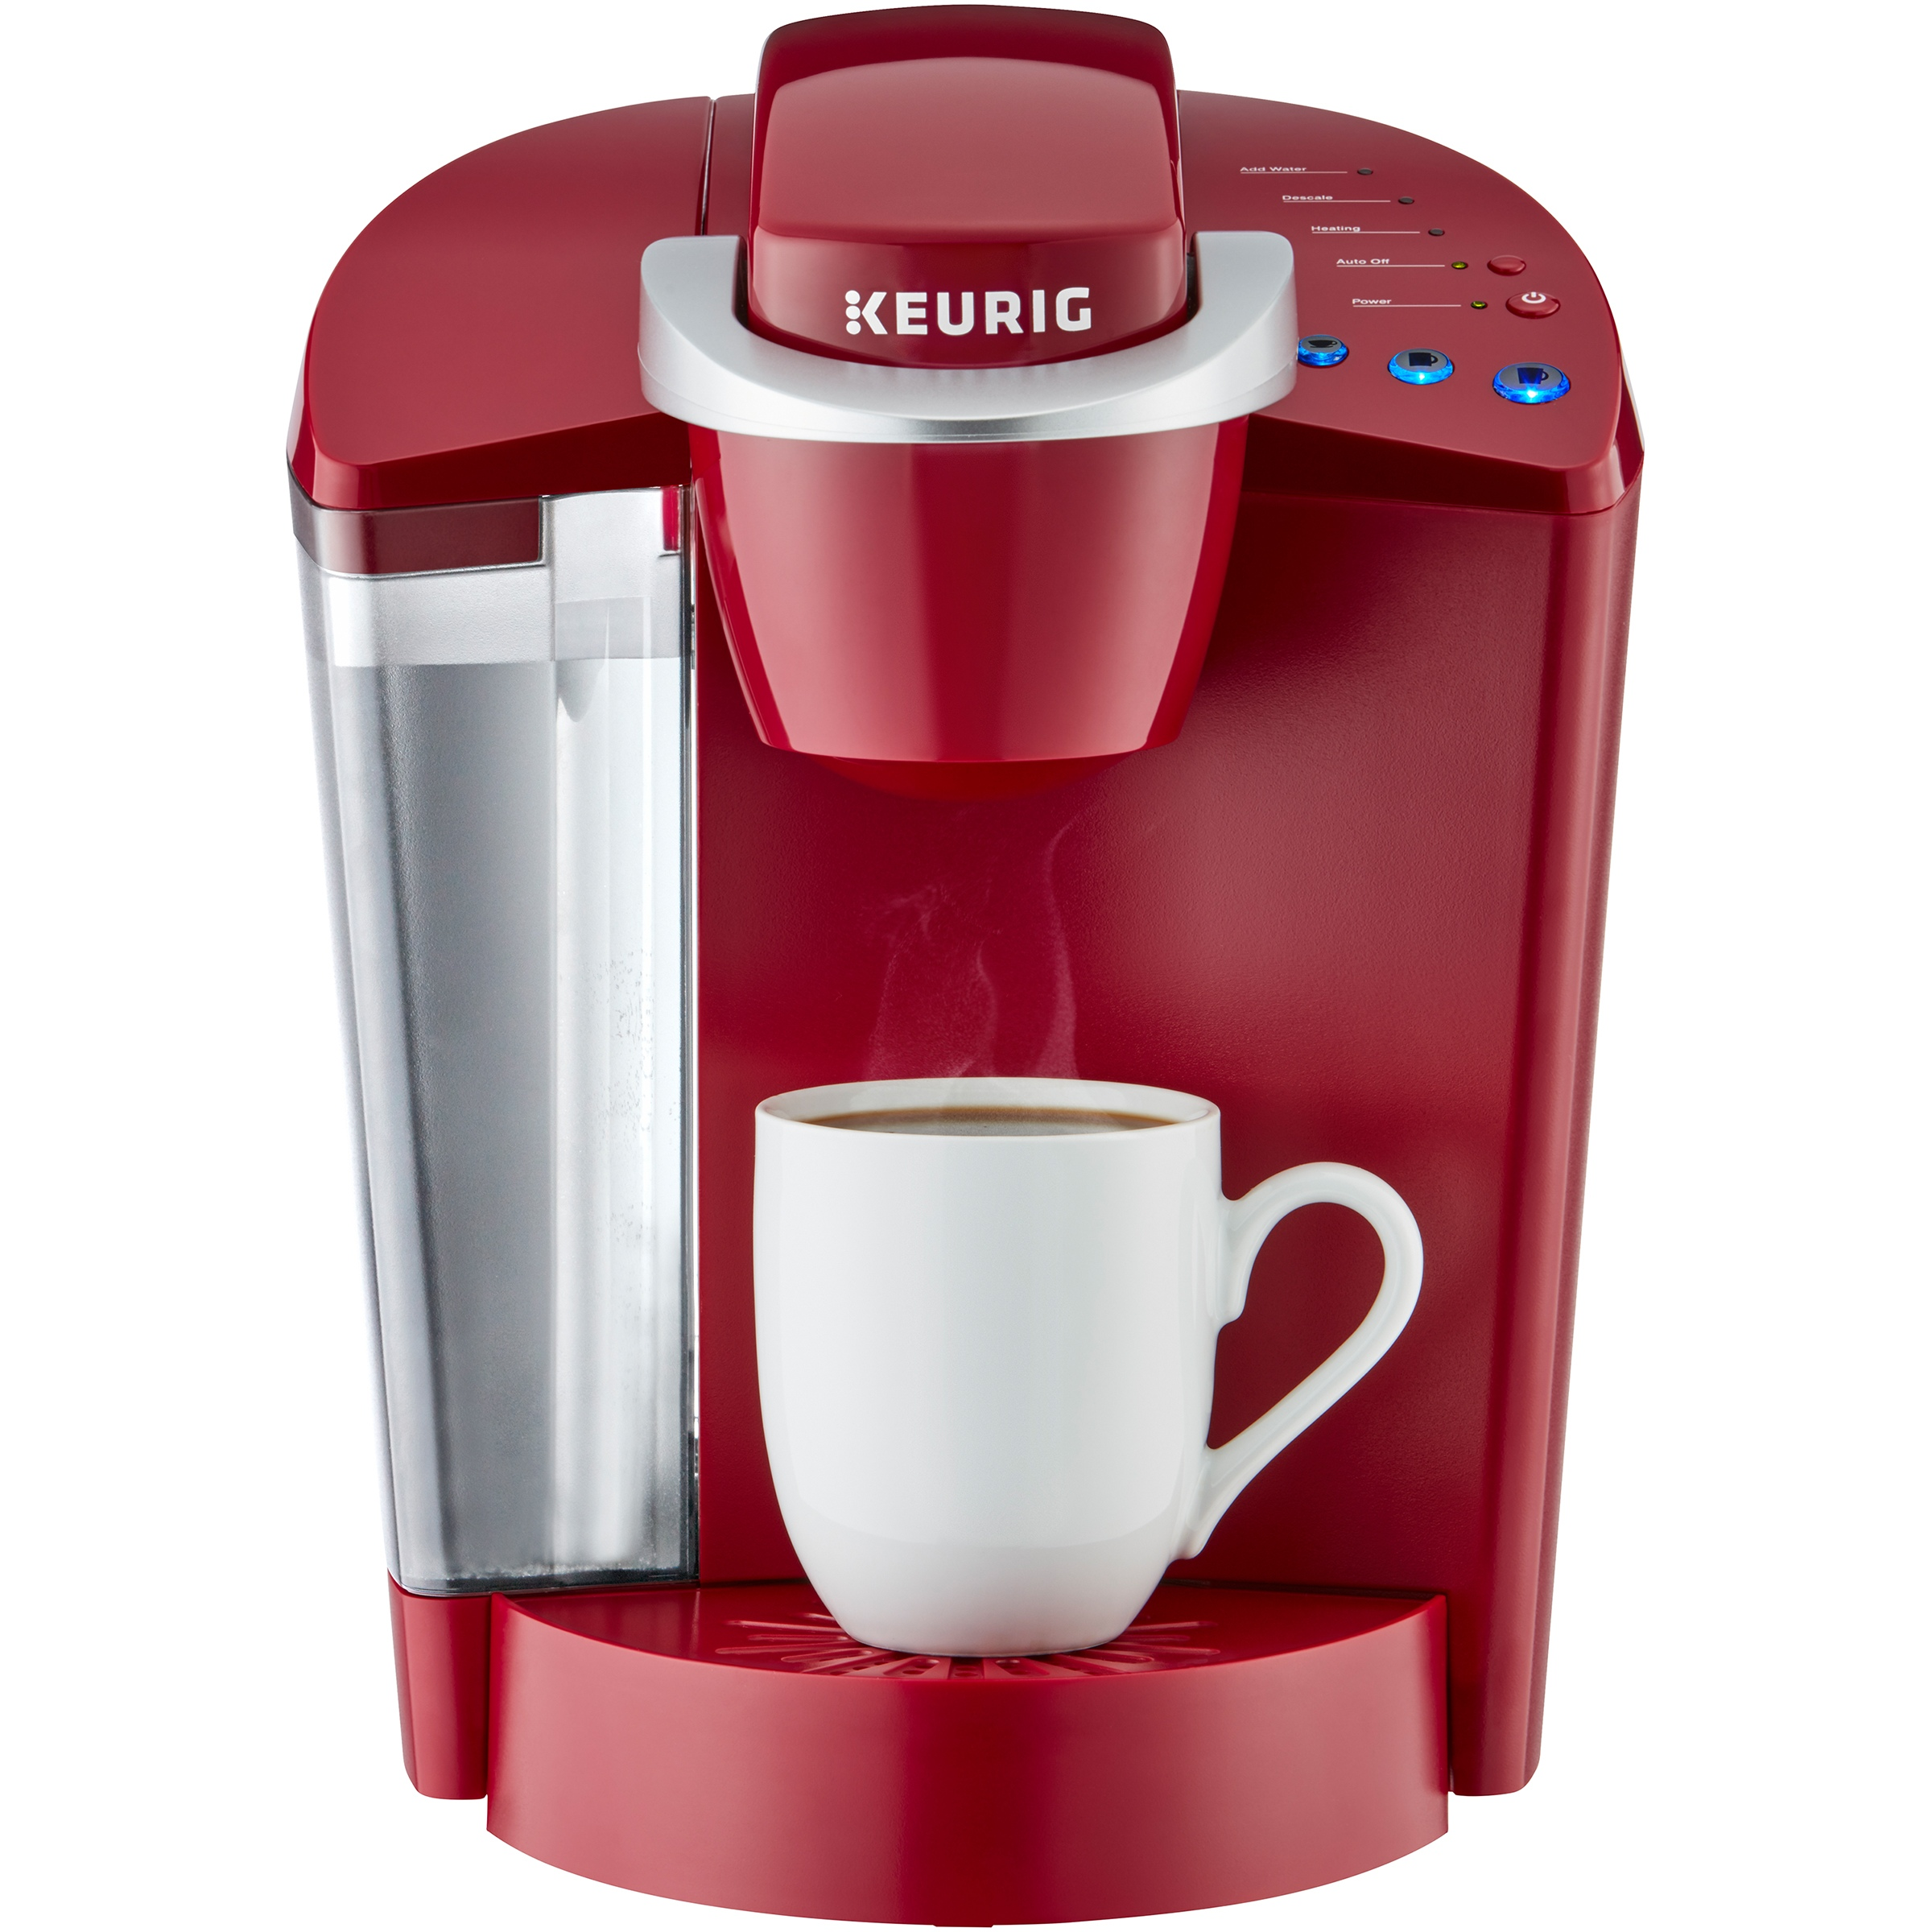 Keurig K50 Coffee Maker